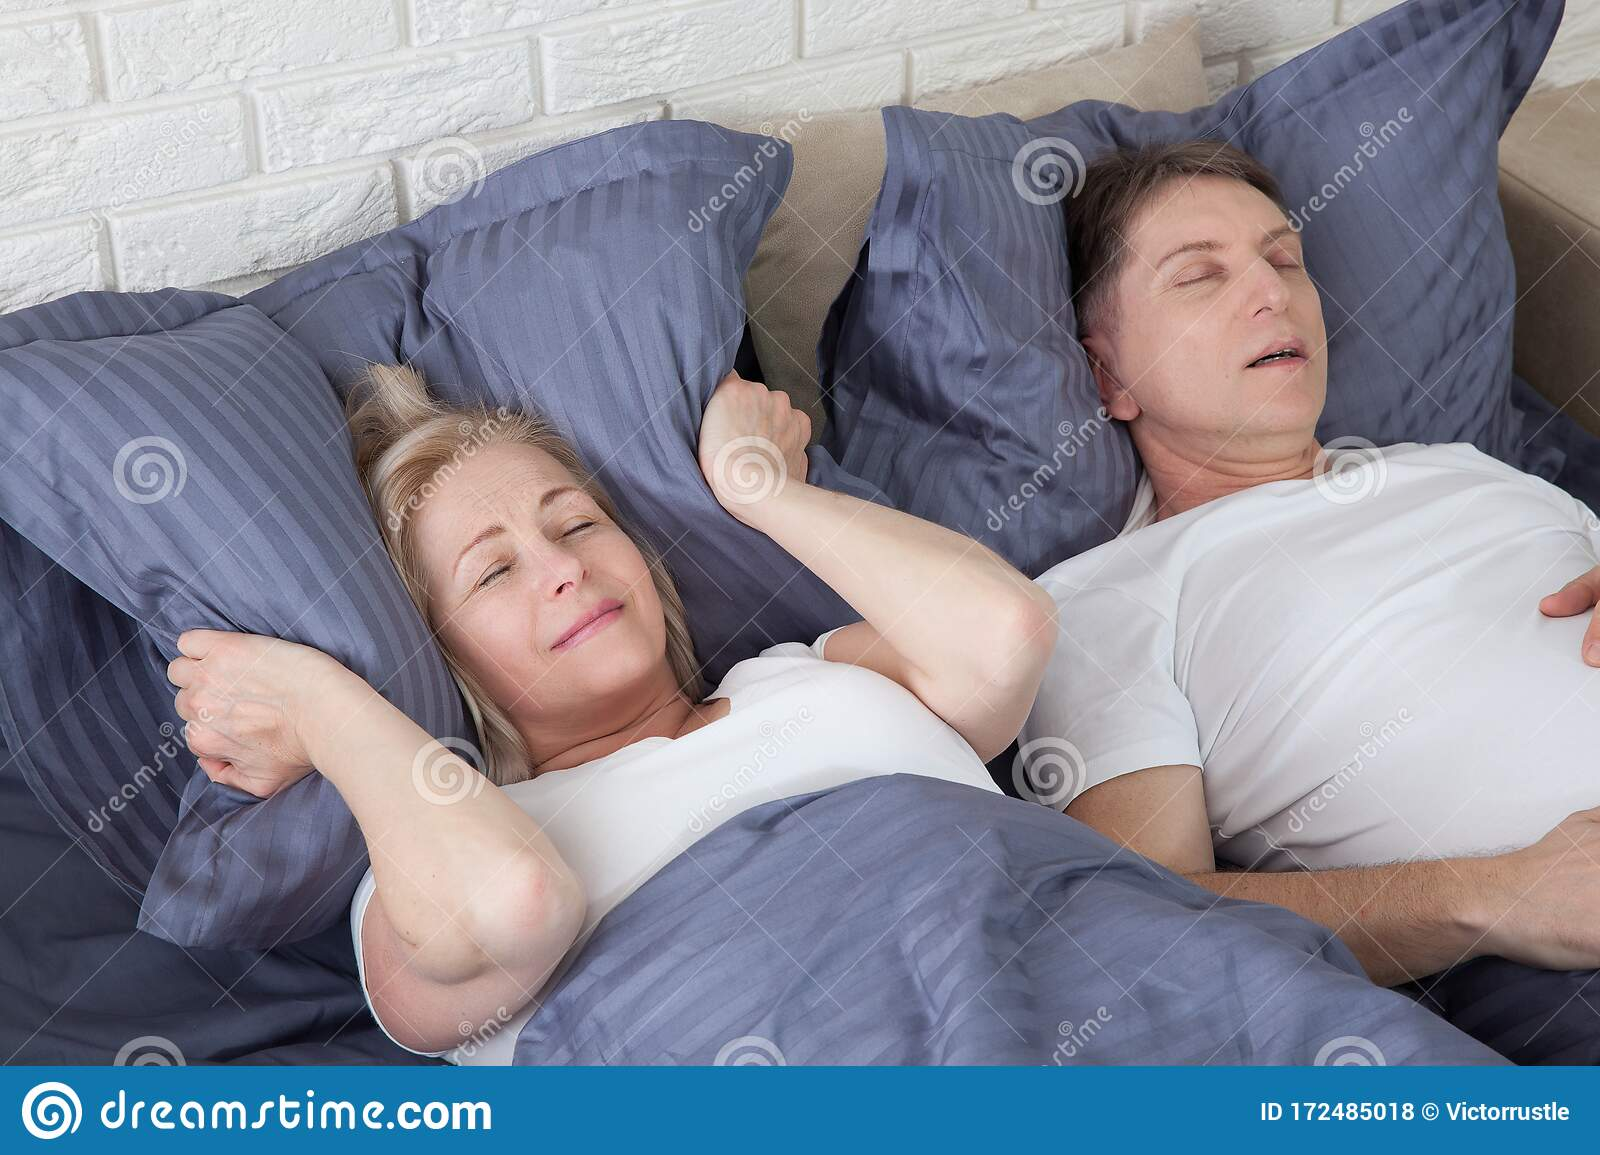 Snoring Man Couple In Bed Man Snoring And Woman Can Not Sleep Covering Ears With Pillow For Snore Noise Middle Age Stock Photo Image Of Annoying Caucasian 172485018